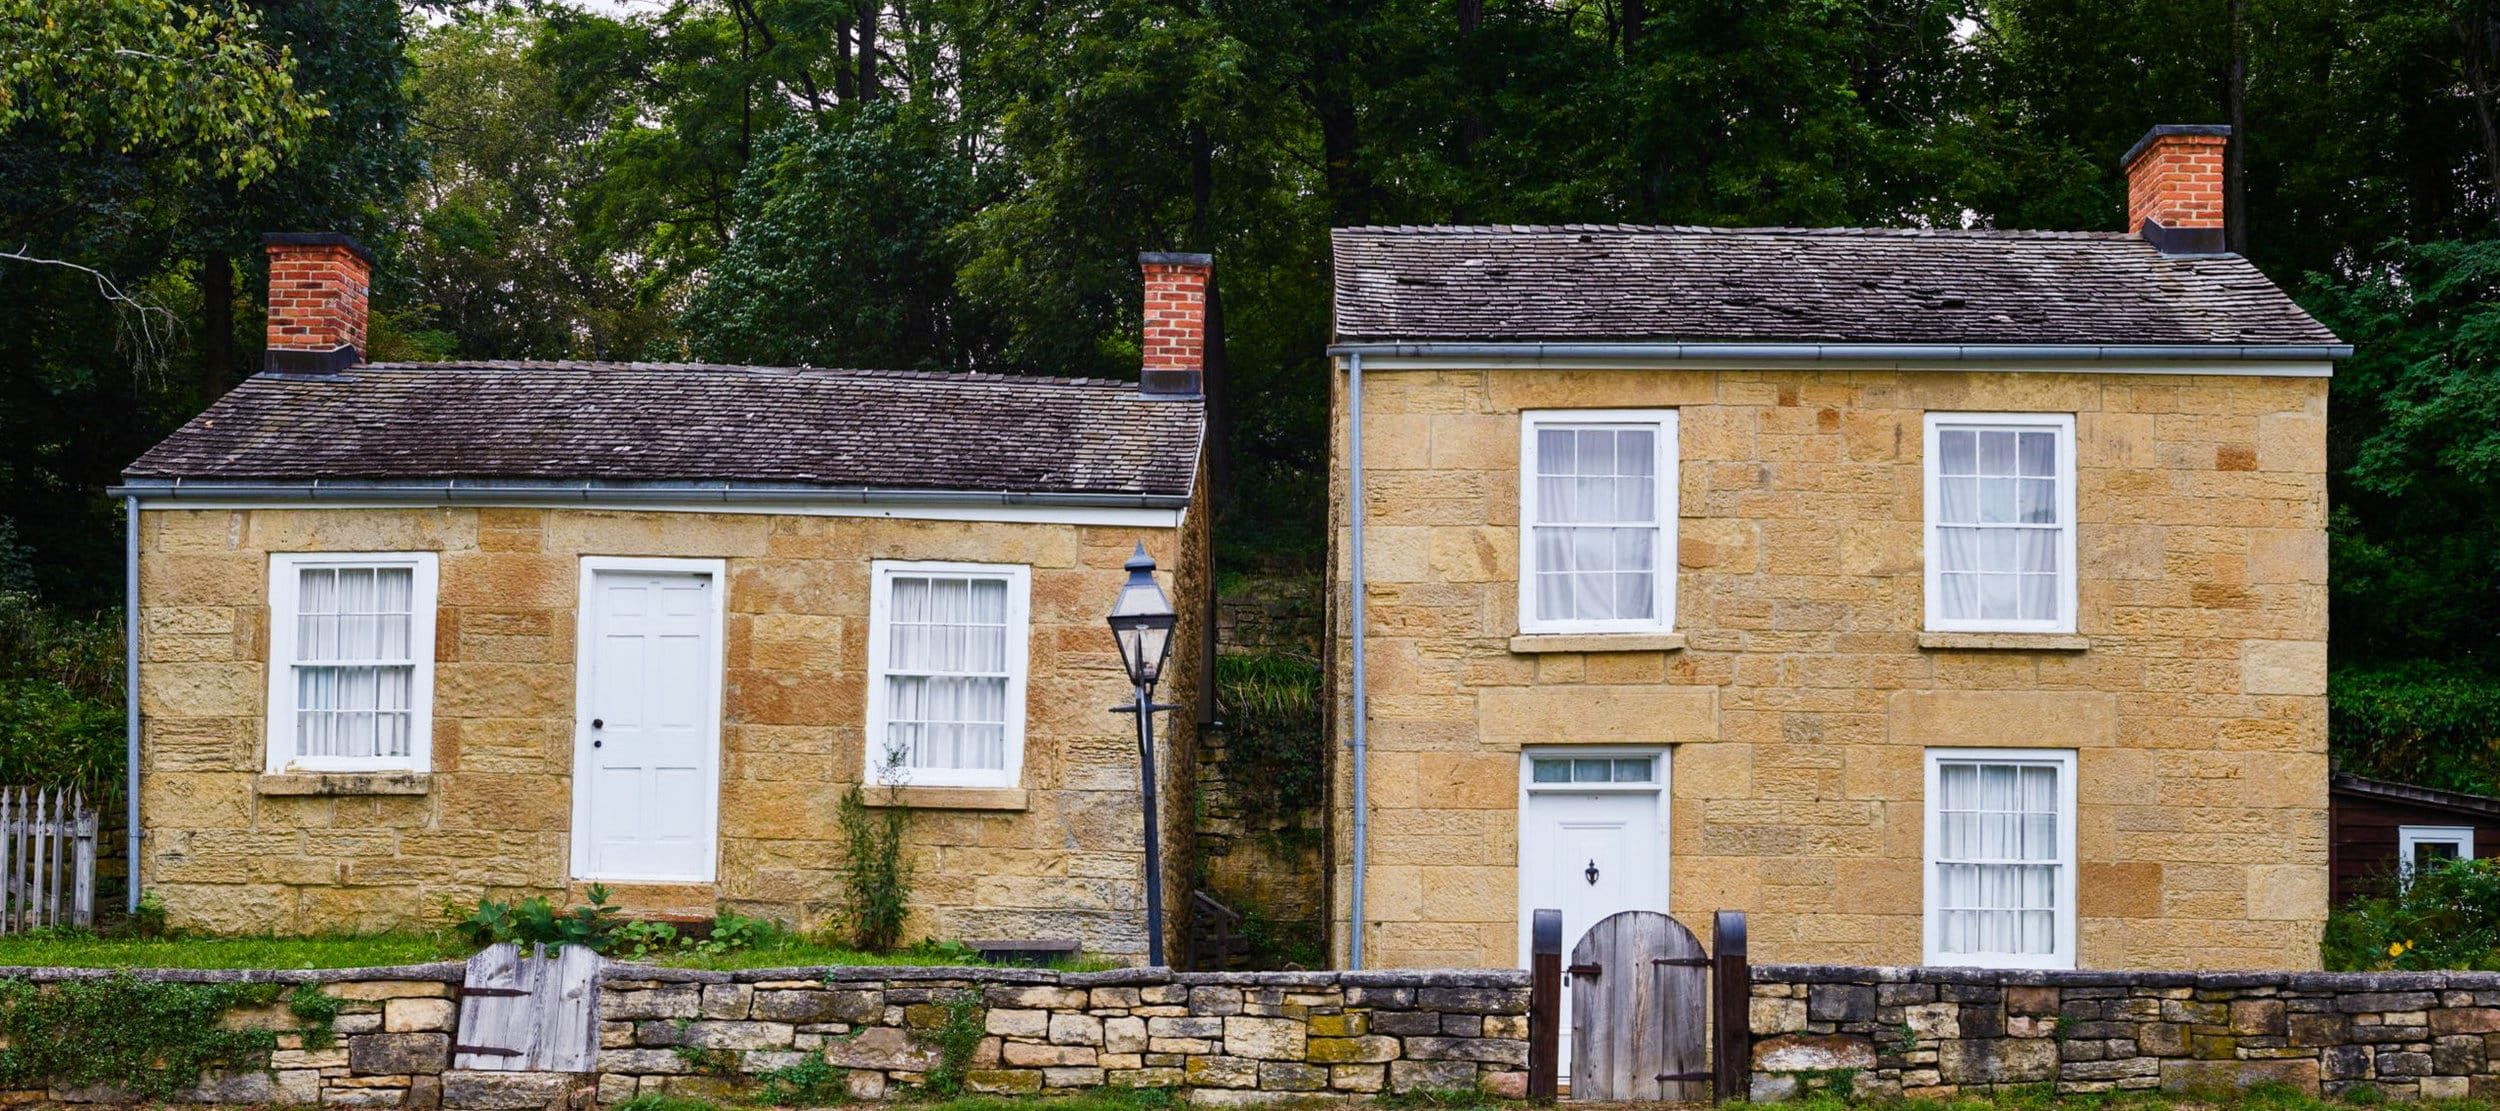 Cousin Jack lived in houses like these in Cornwall. Pendarves House and Trelawney House, Cornish miners houses, Mineral Point, Wisconsin.